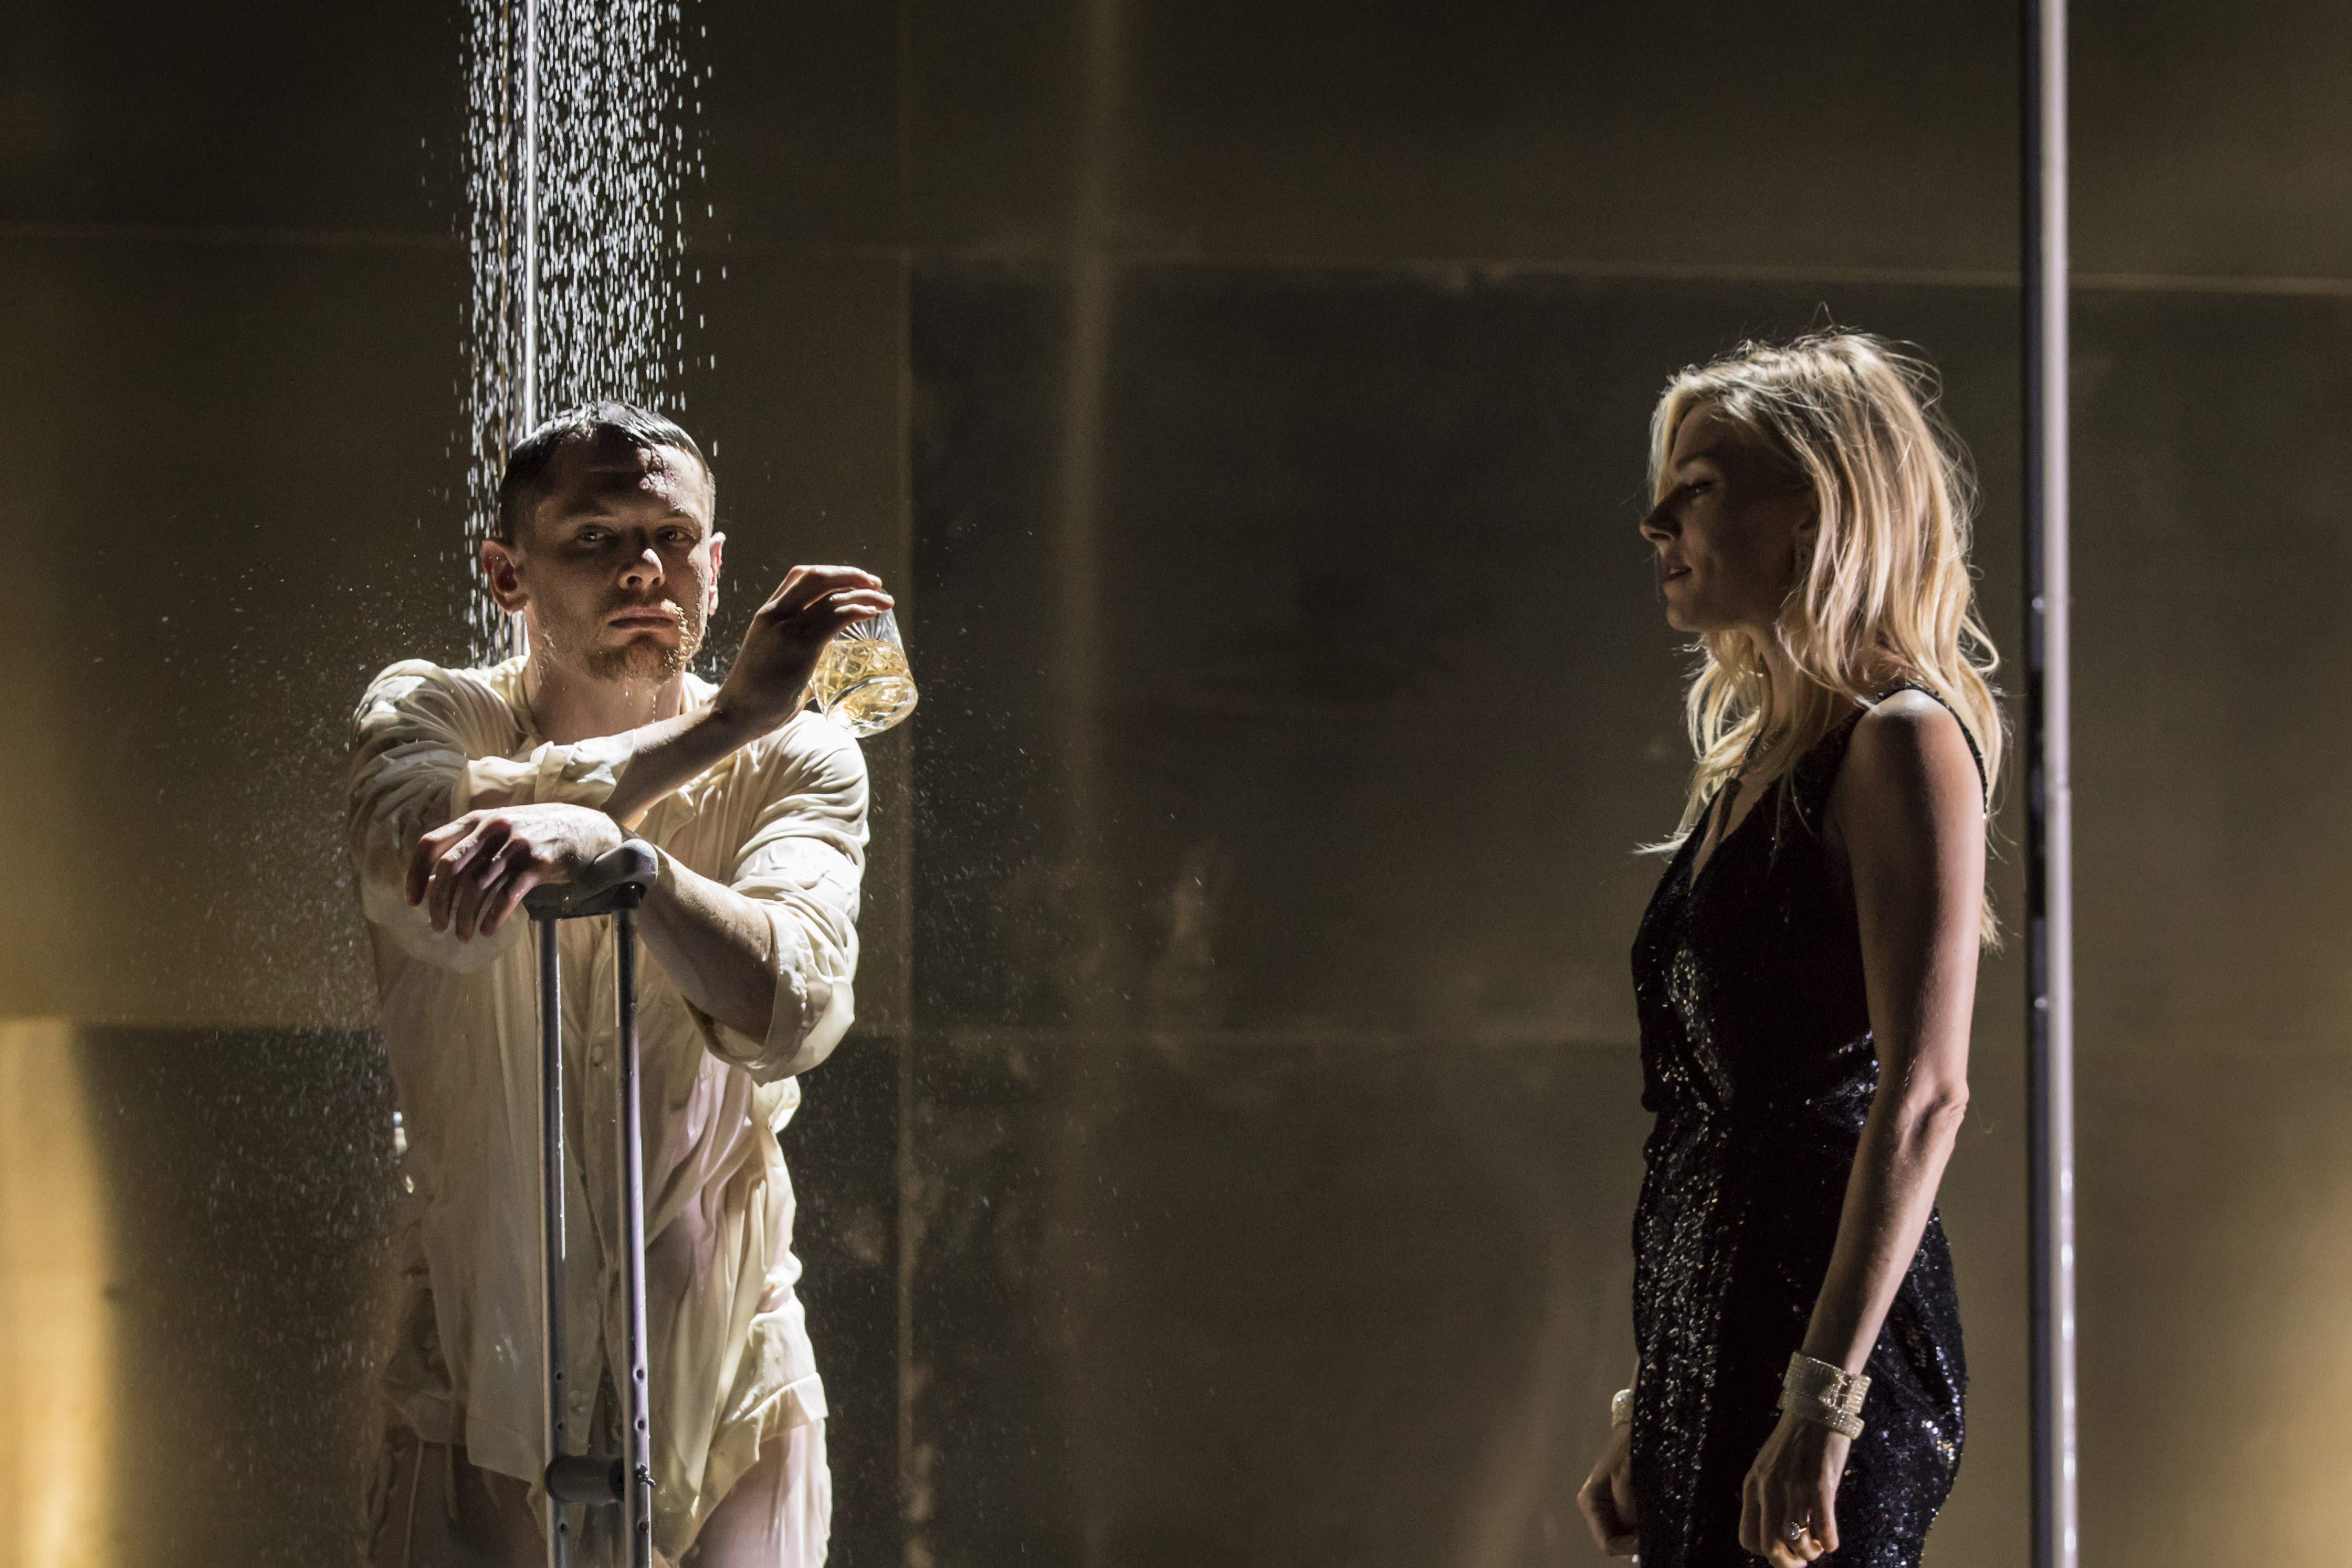 Jack O'Connell (Brick) and Sienna Miller (Maggie) - credit Johan Persson